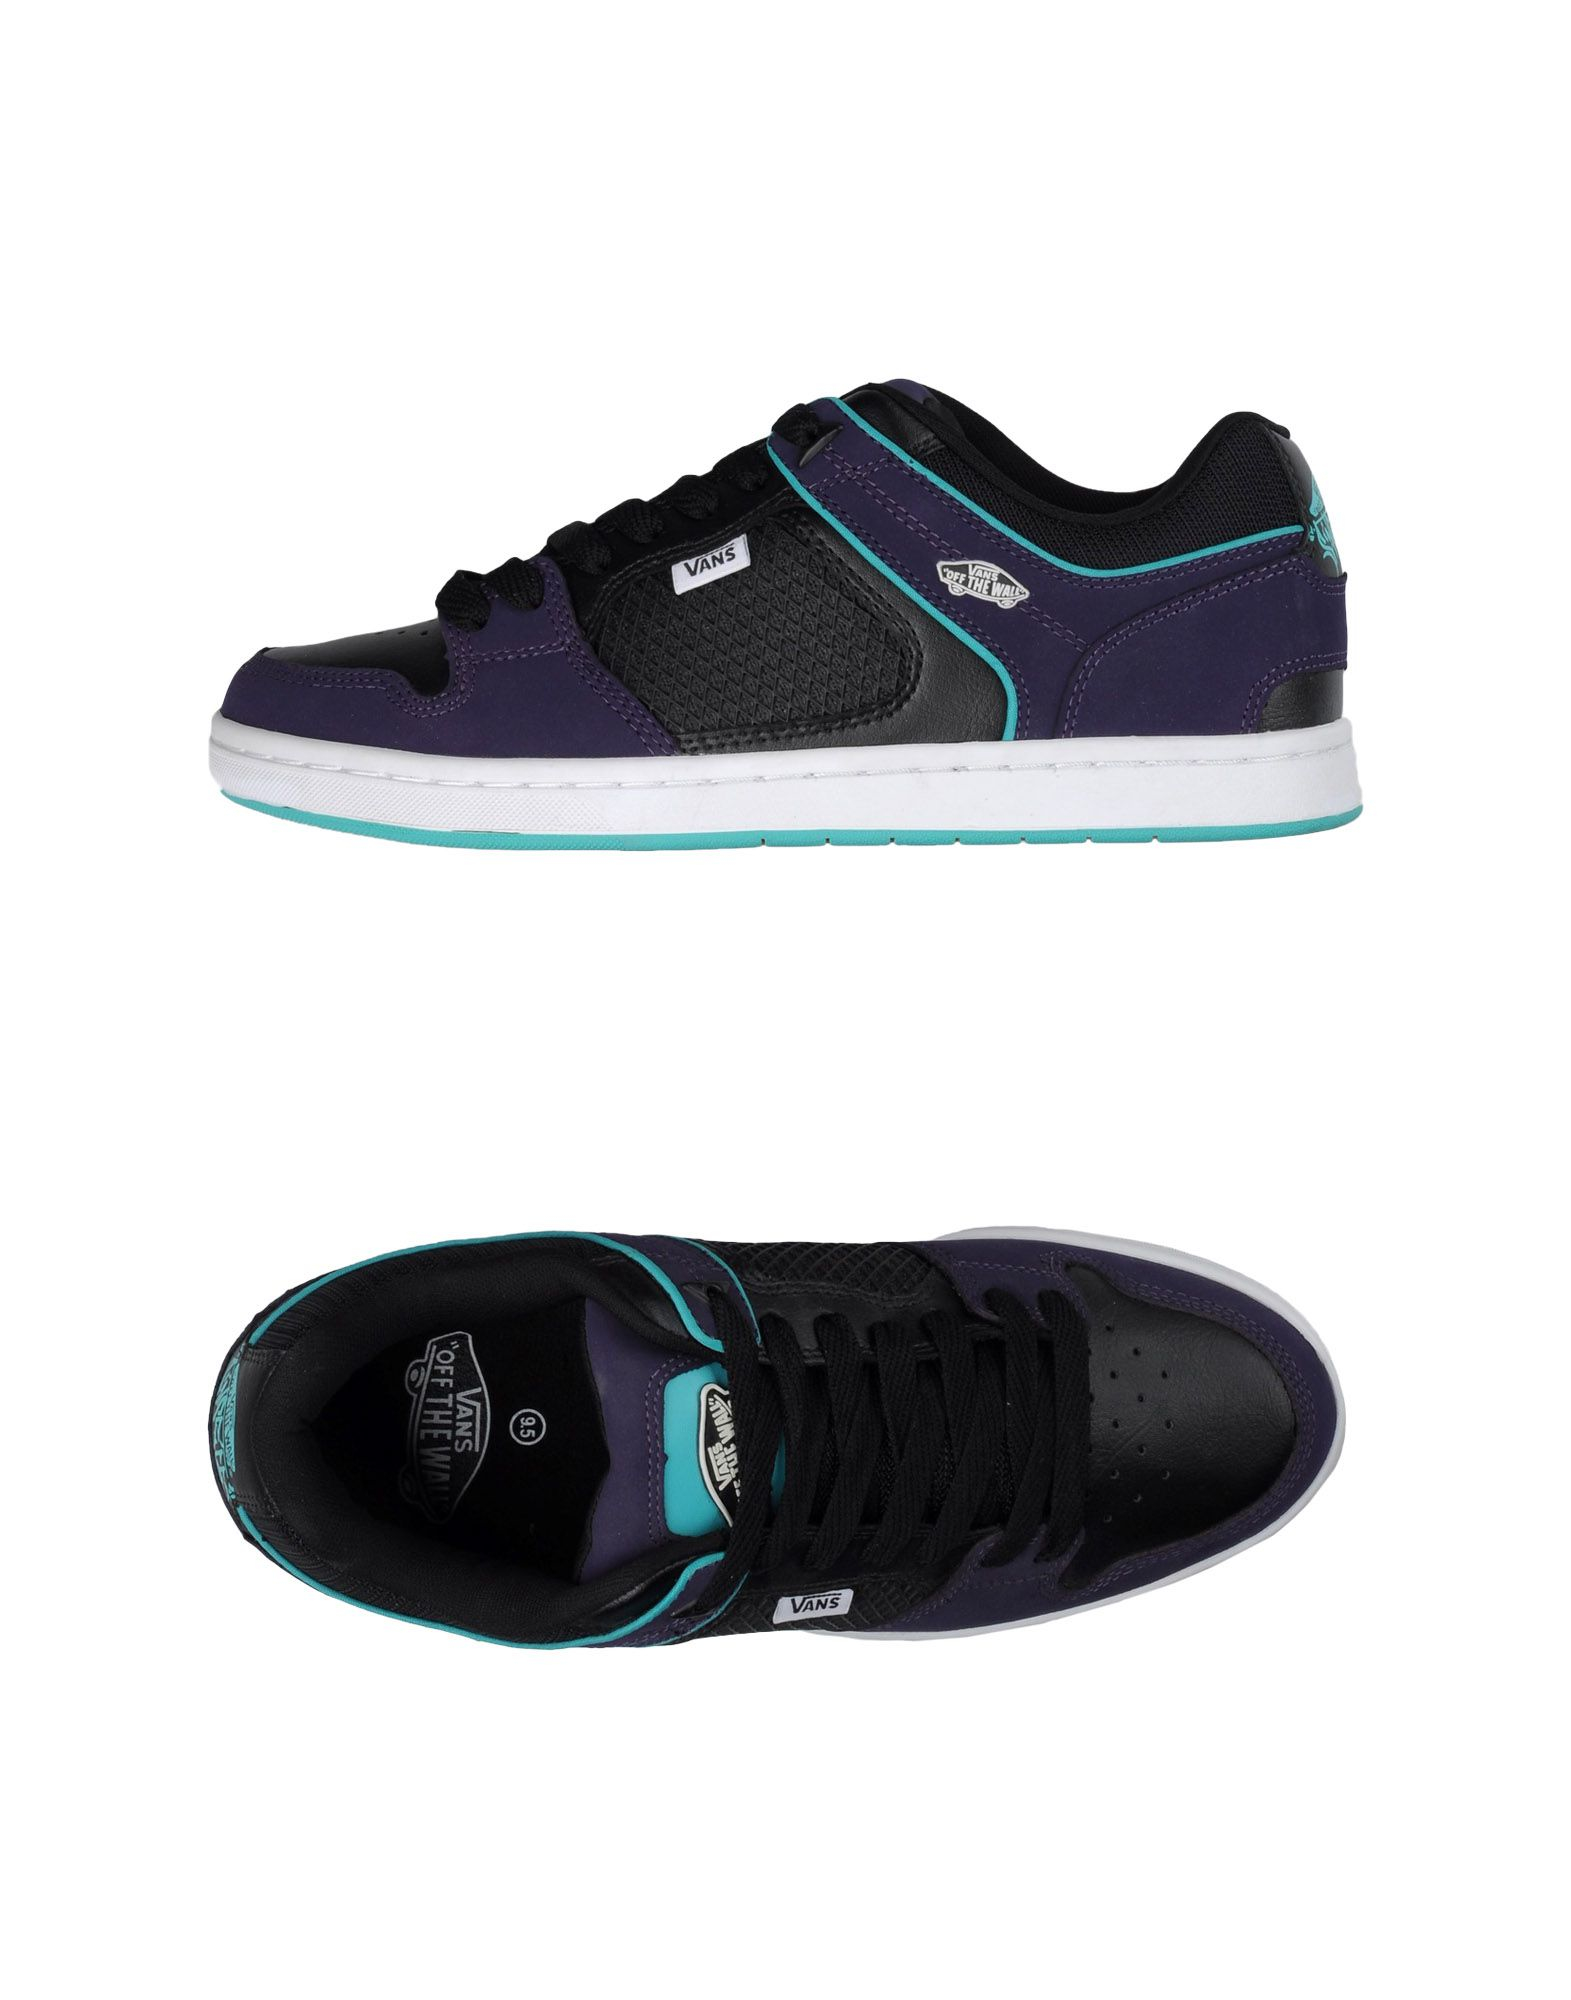 lyst vans low tops trainers in purple for men. Black Bedroom Furniture Sets. Home Design Ideas